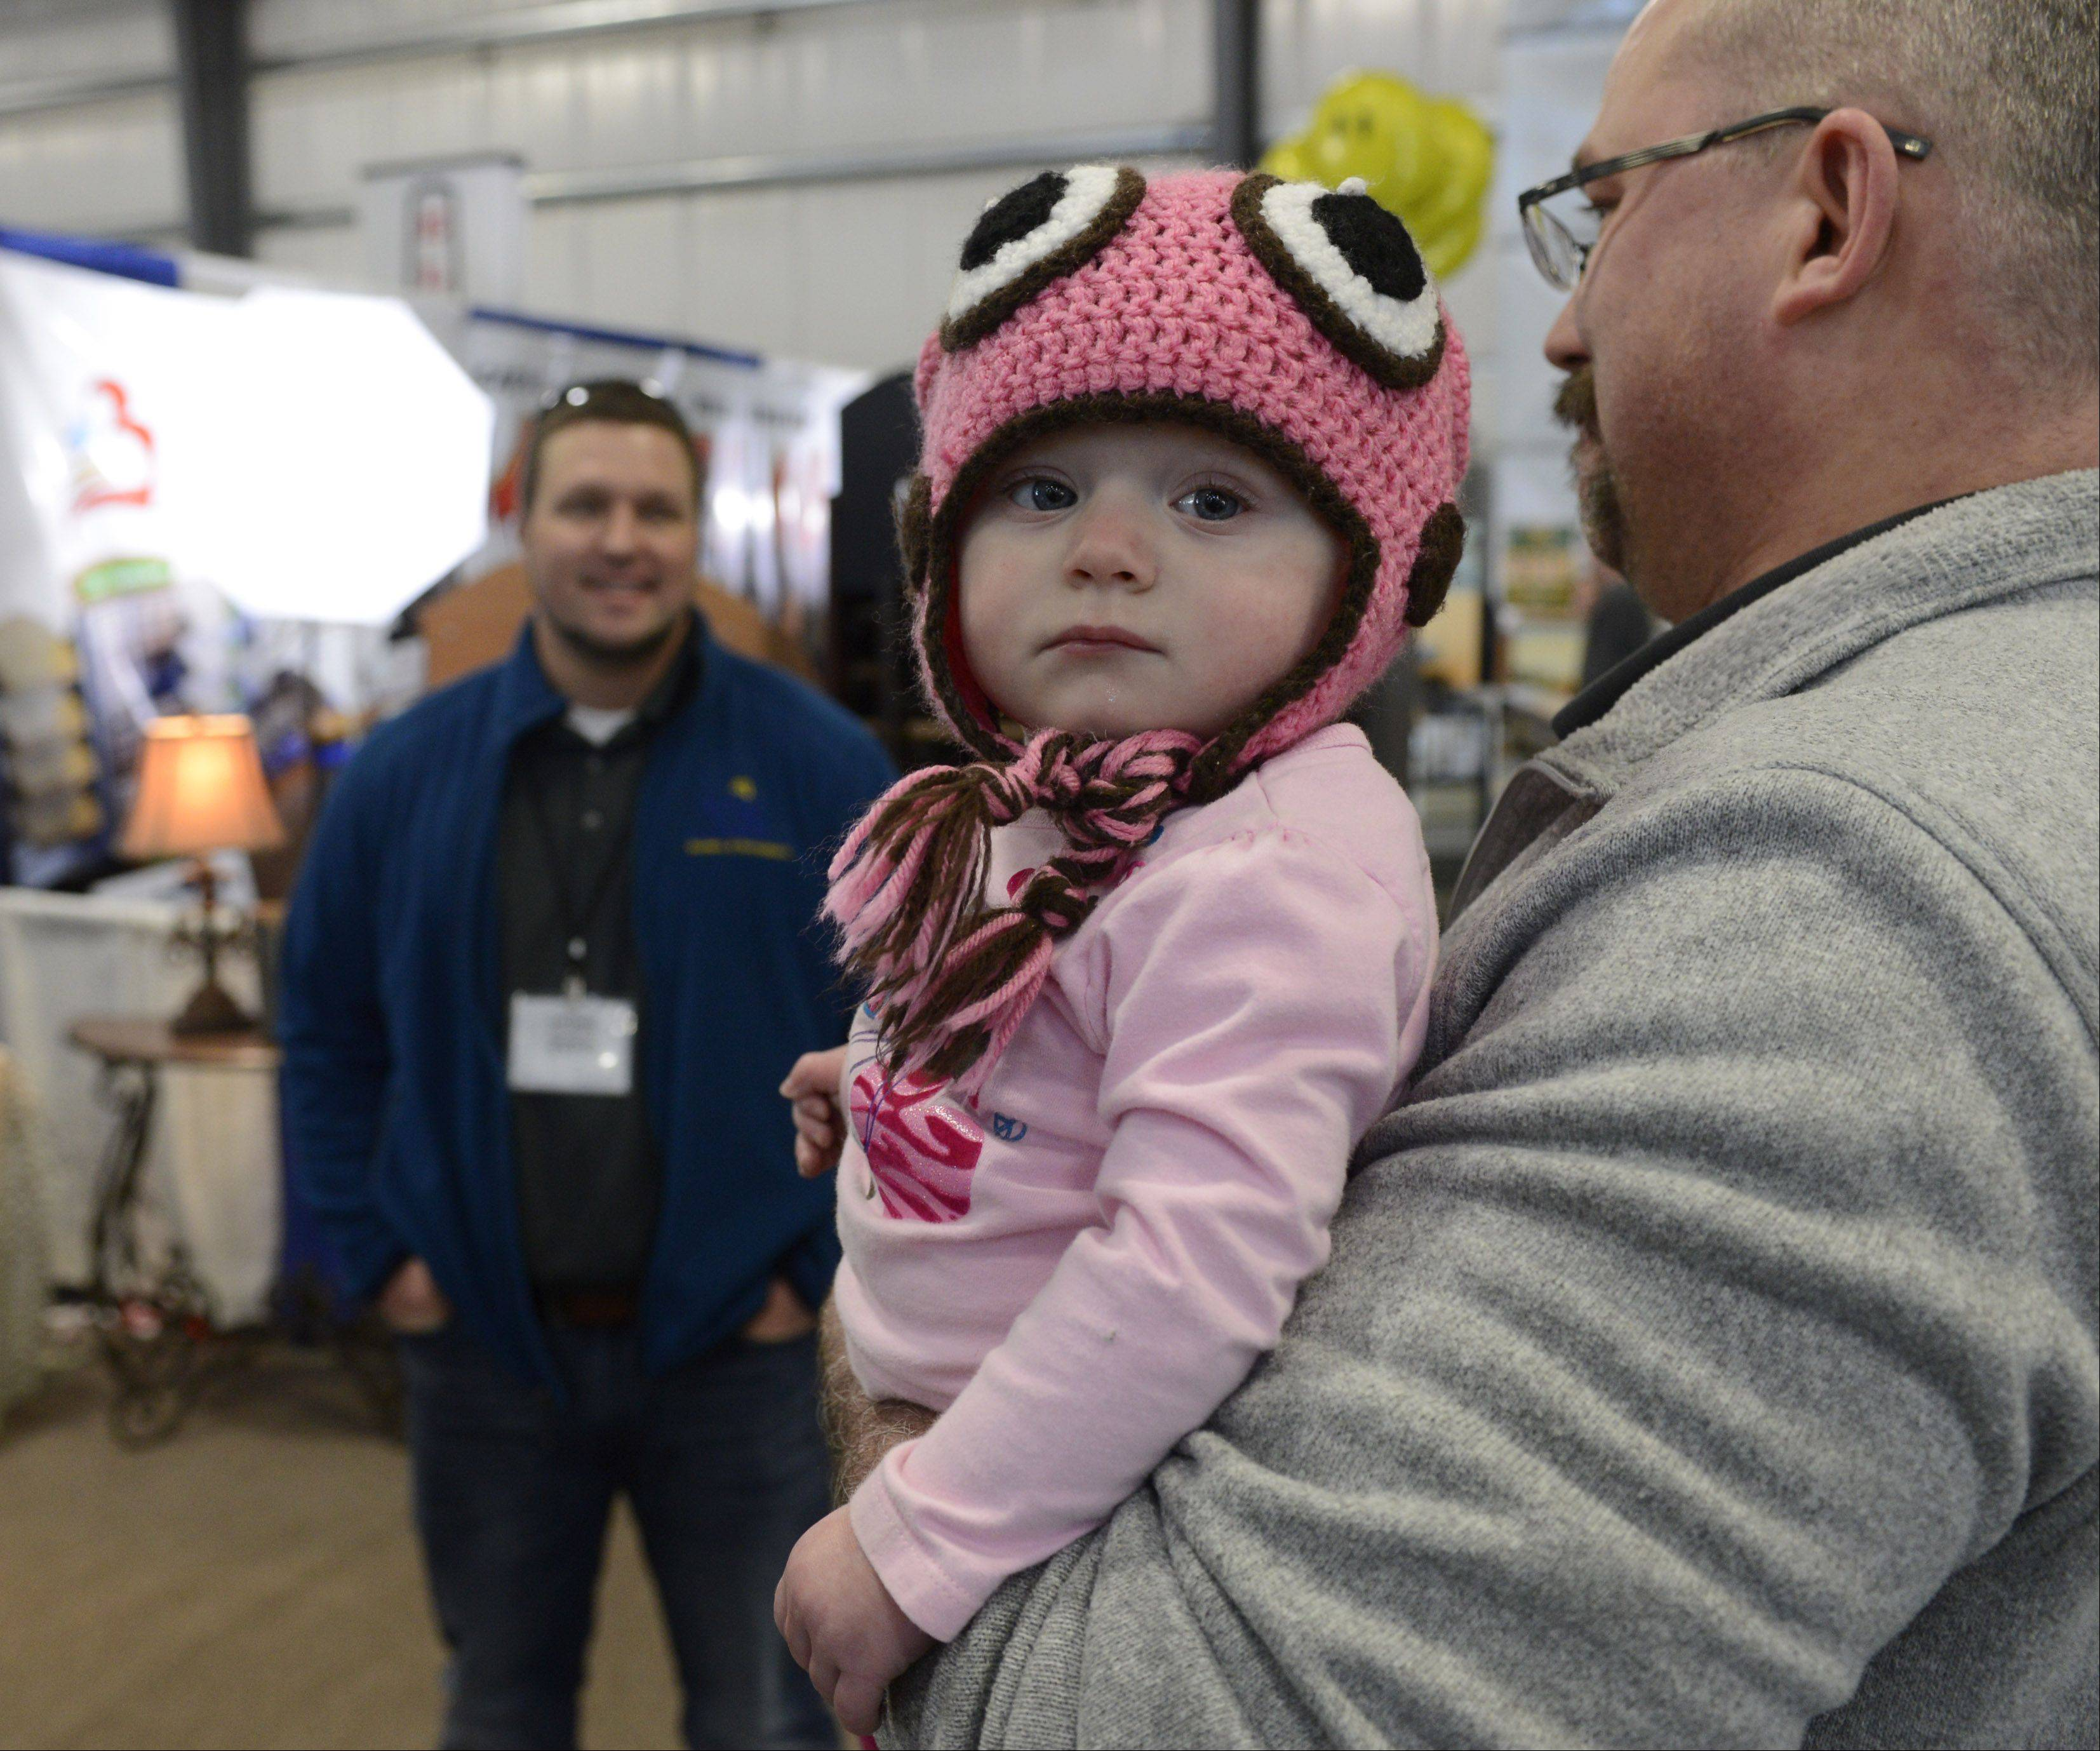 Sofia Leifer, 13 months, waits as her dad, Brett, of Energy Jacket, Crystal Lake, talks with fellow exhibitor Ryan Roggy of RC Contractors, Antioch, during the Home Building and Remodeling Expo at the Lake County Fairgrounds in Grayslake Sunday.